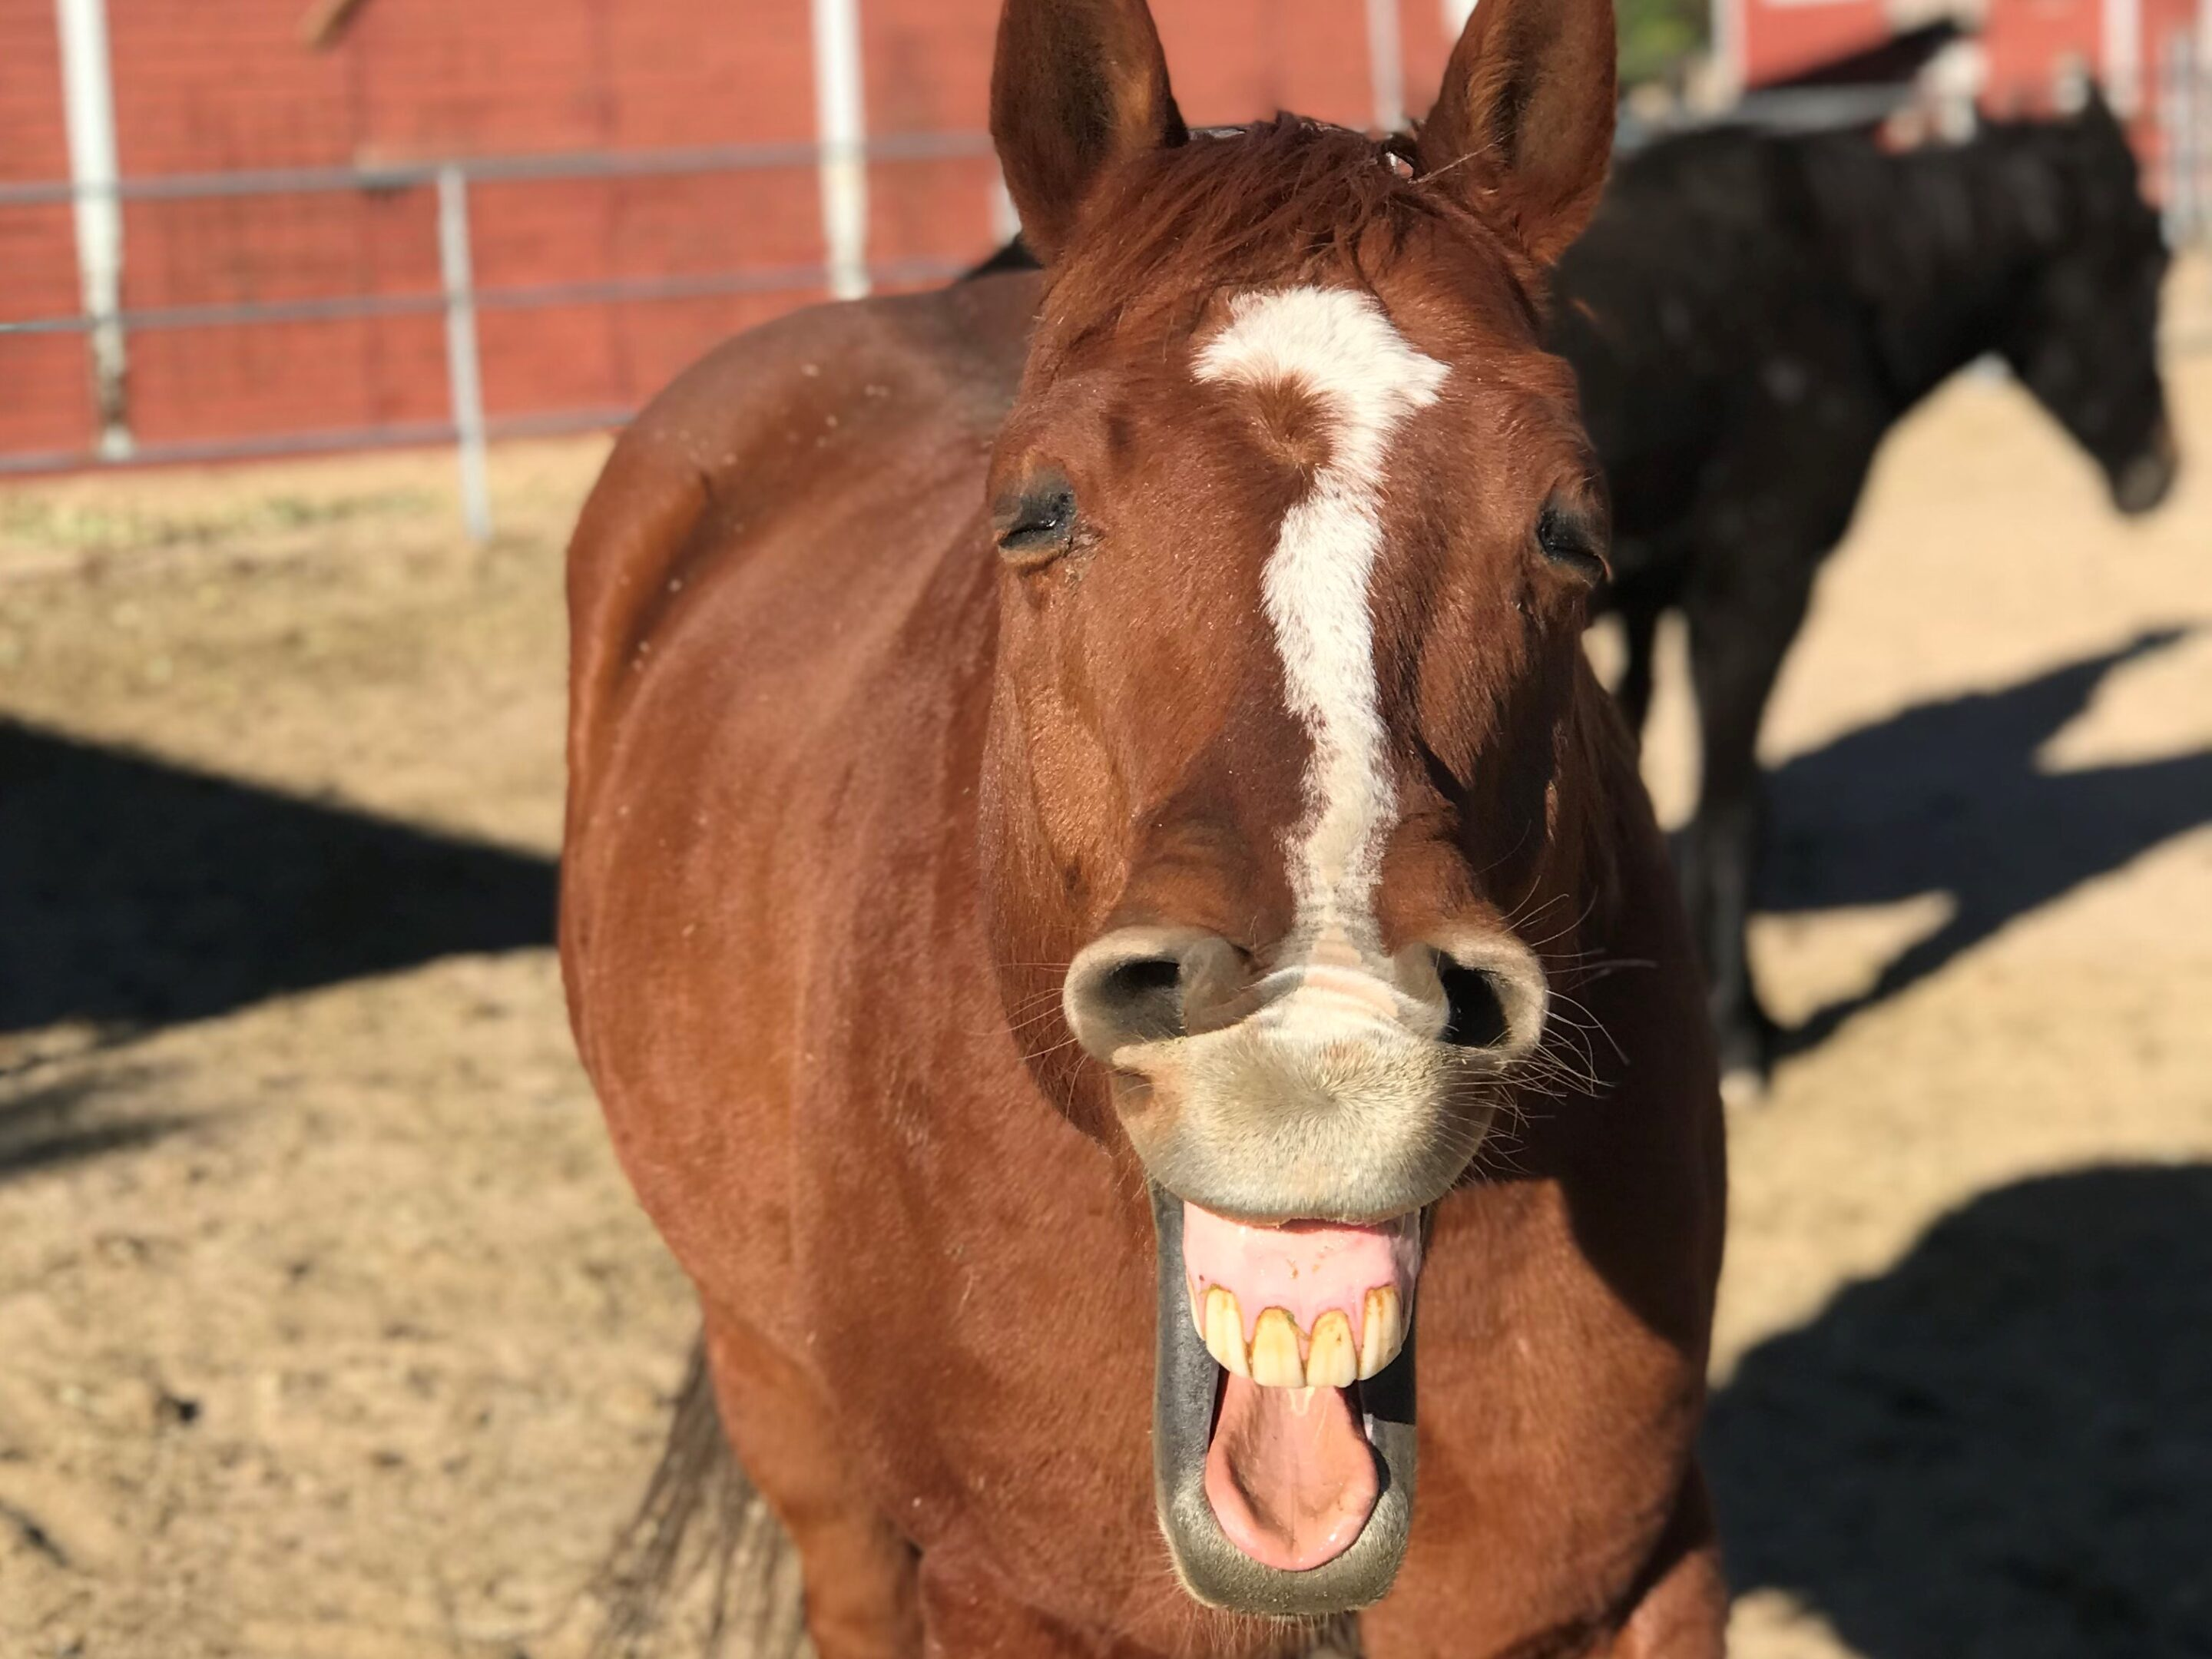 A chestnut horse with a narrow white blaze shows his teeth and gums